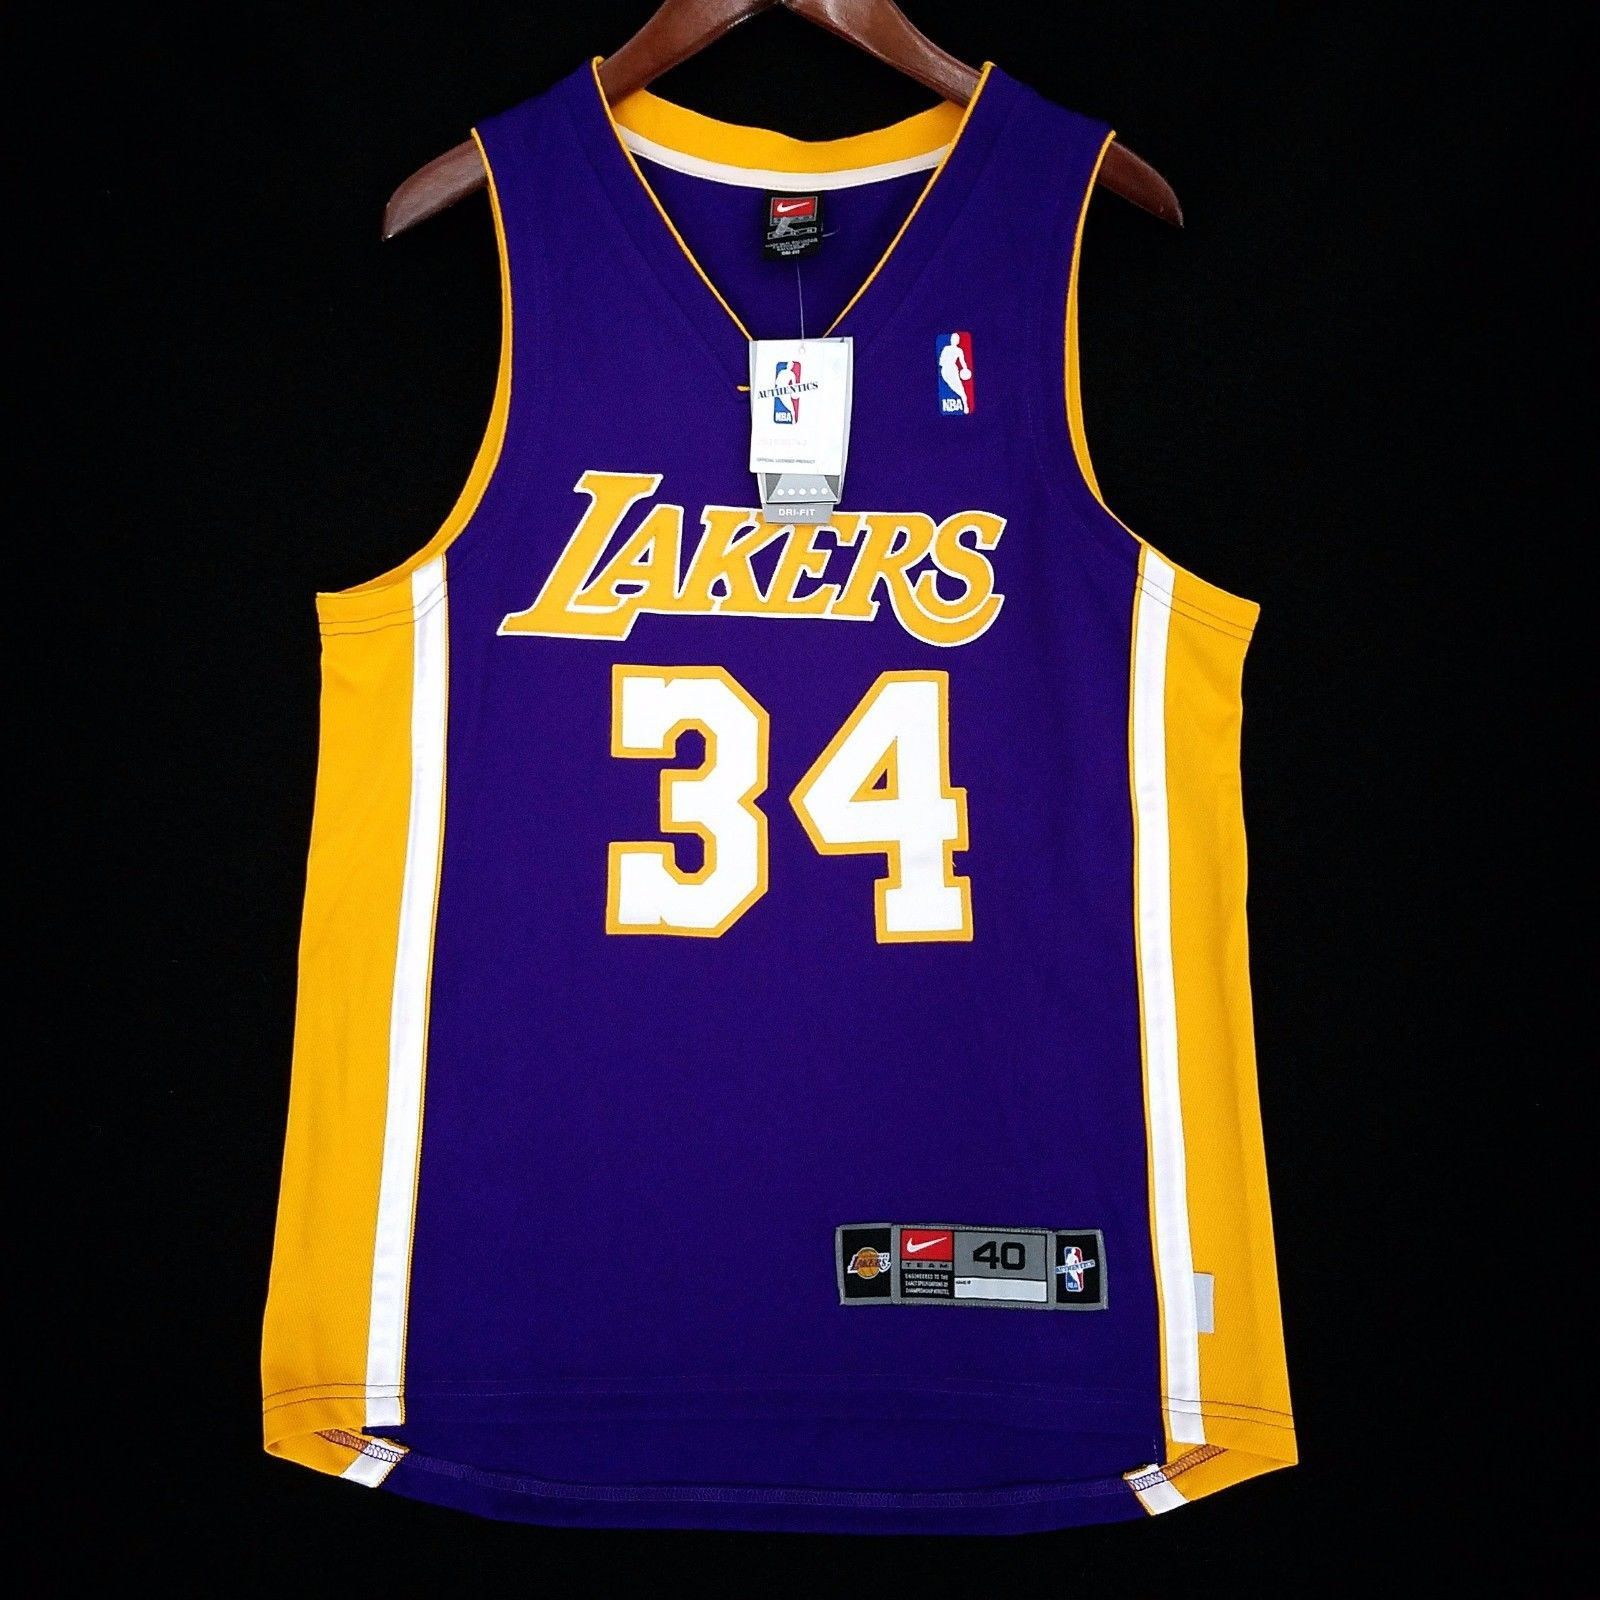 13c31abb4 ... JERSEY » Shaquille O Neal Los Angeles Lakers Nike Authentic Jersey.  Shaquille ...